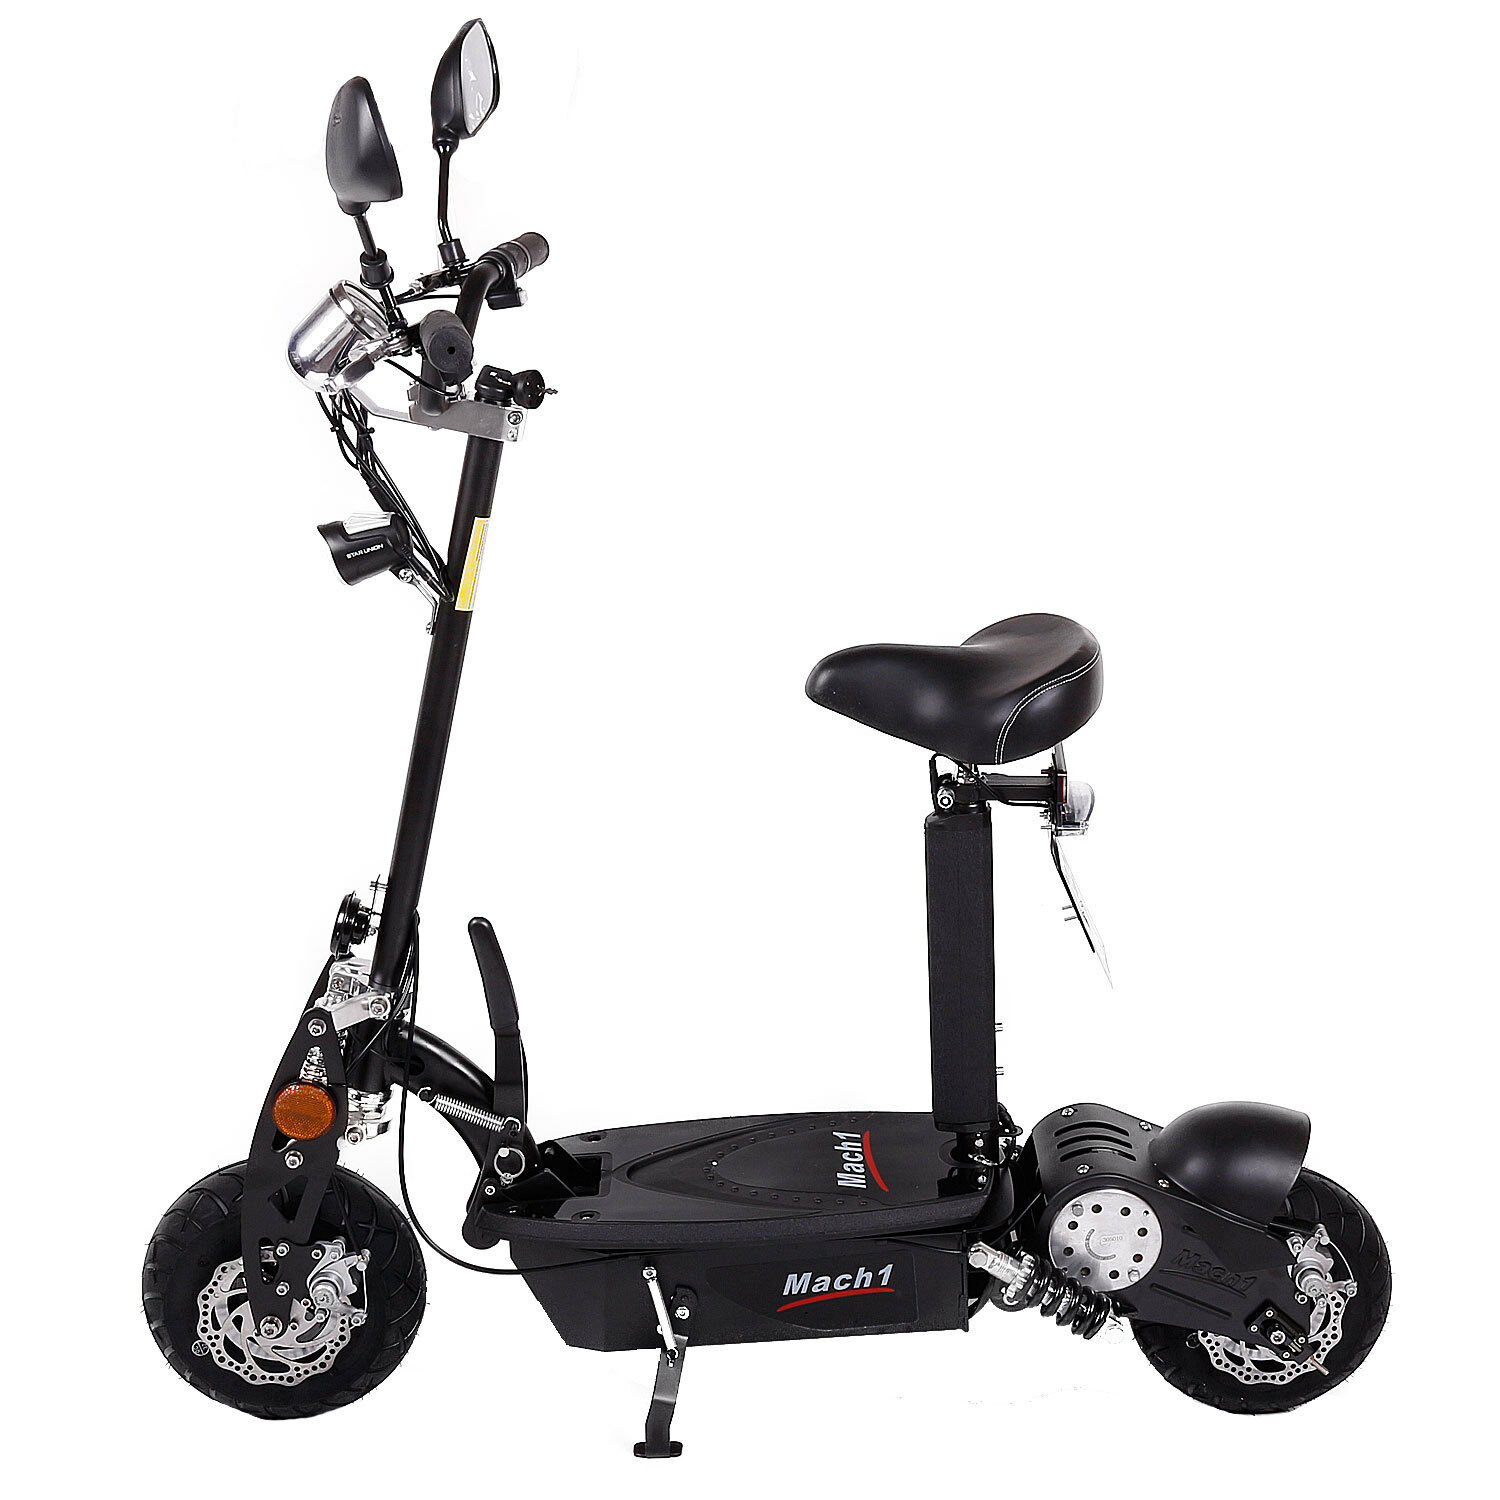 Mach1 E-Scooter 500W 36V mit Strassenzulassung Mofa Scooter Elektro Roller Roller Roller 1693 c357d6